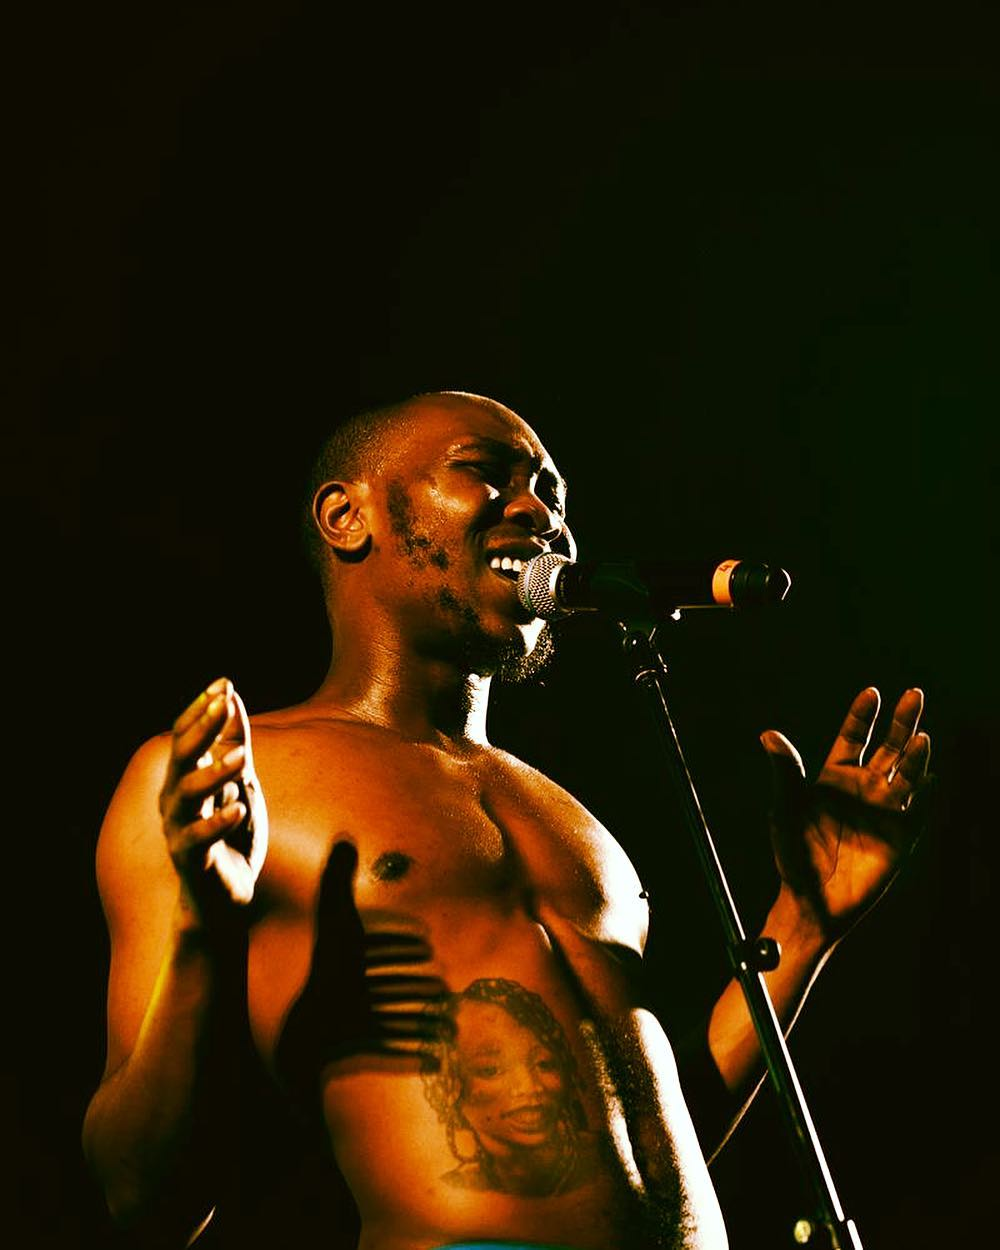 38649675 496785080748112 184464881108385792 n - Seun Kuti listed to perform at 61st annual Grammy awards